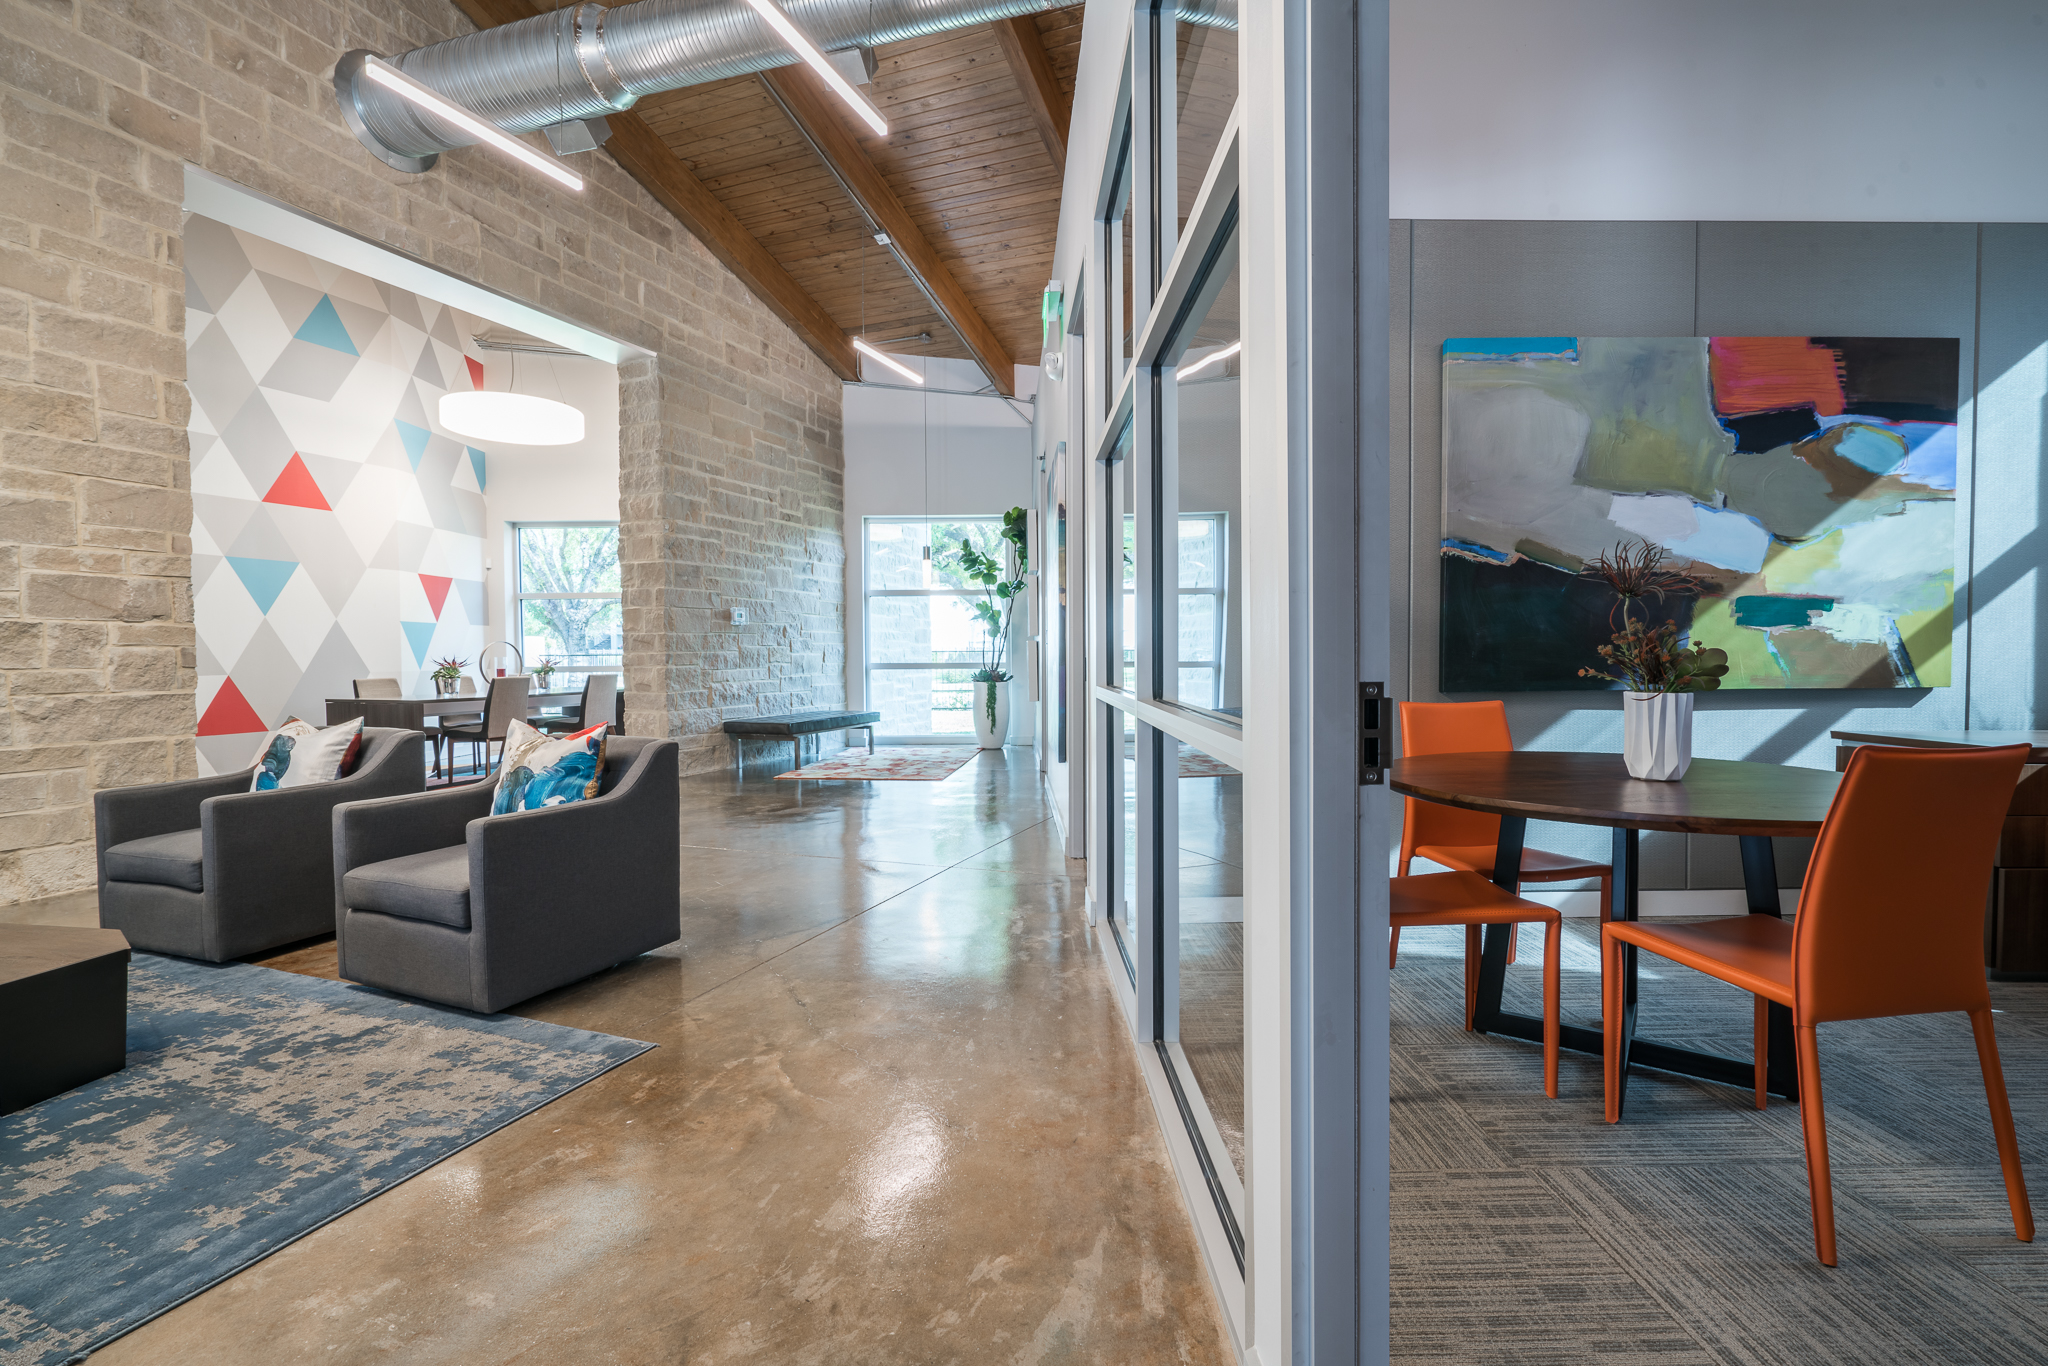 Bright and colorful leasing center interior design in Austin, Texas